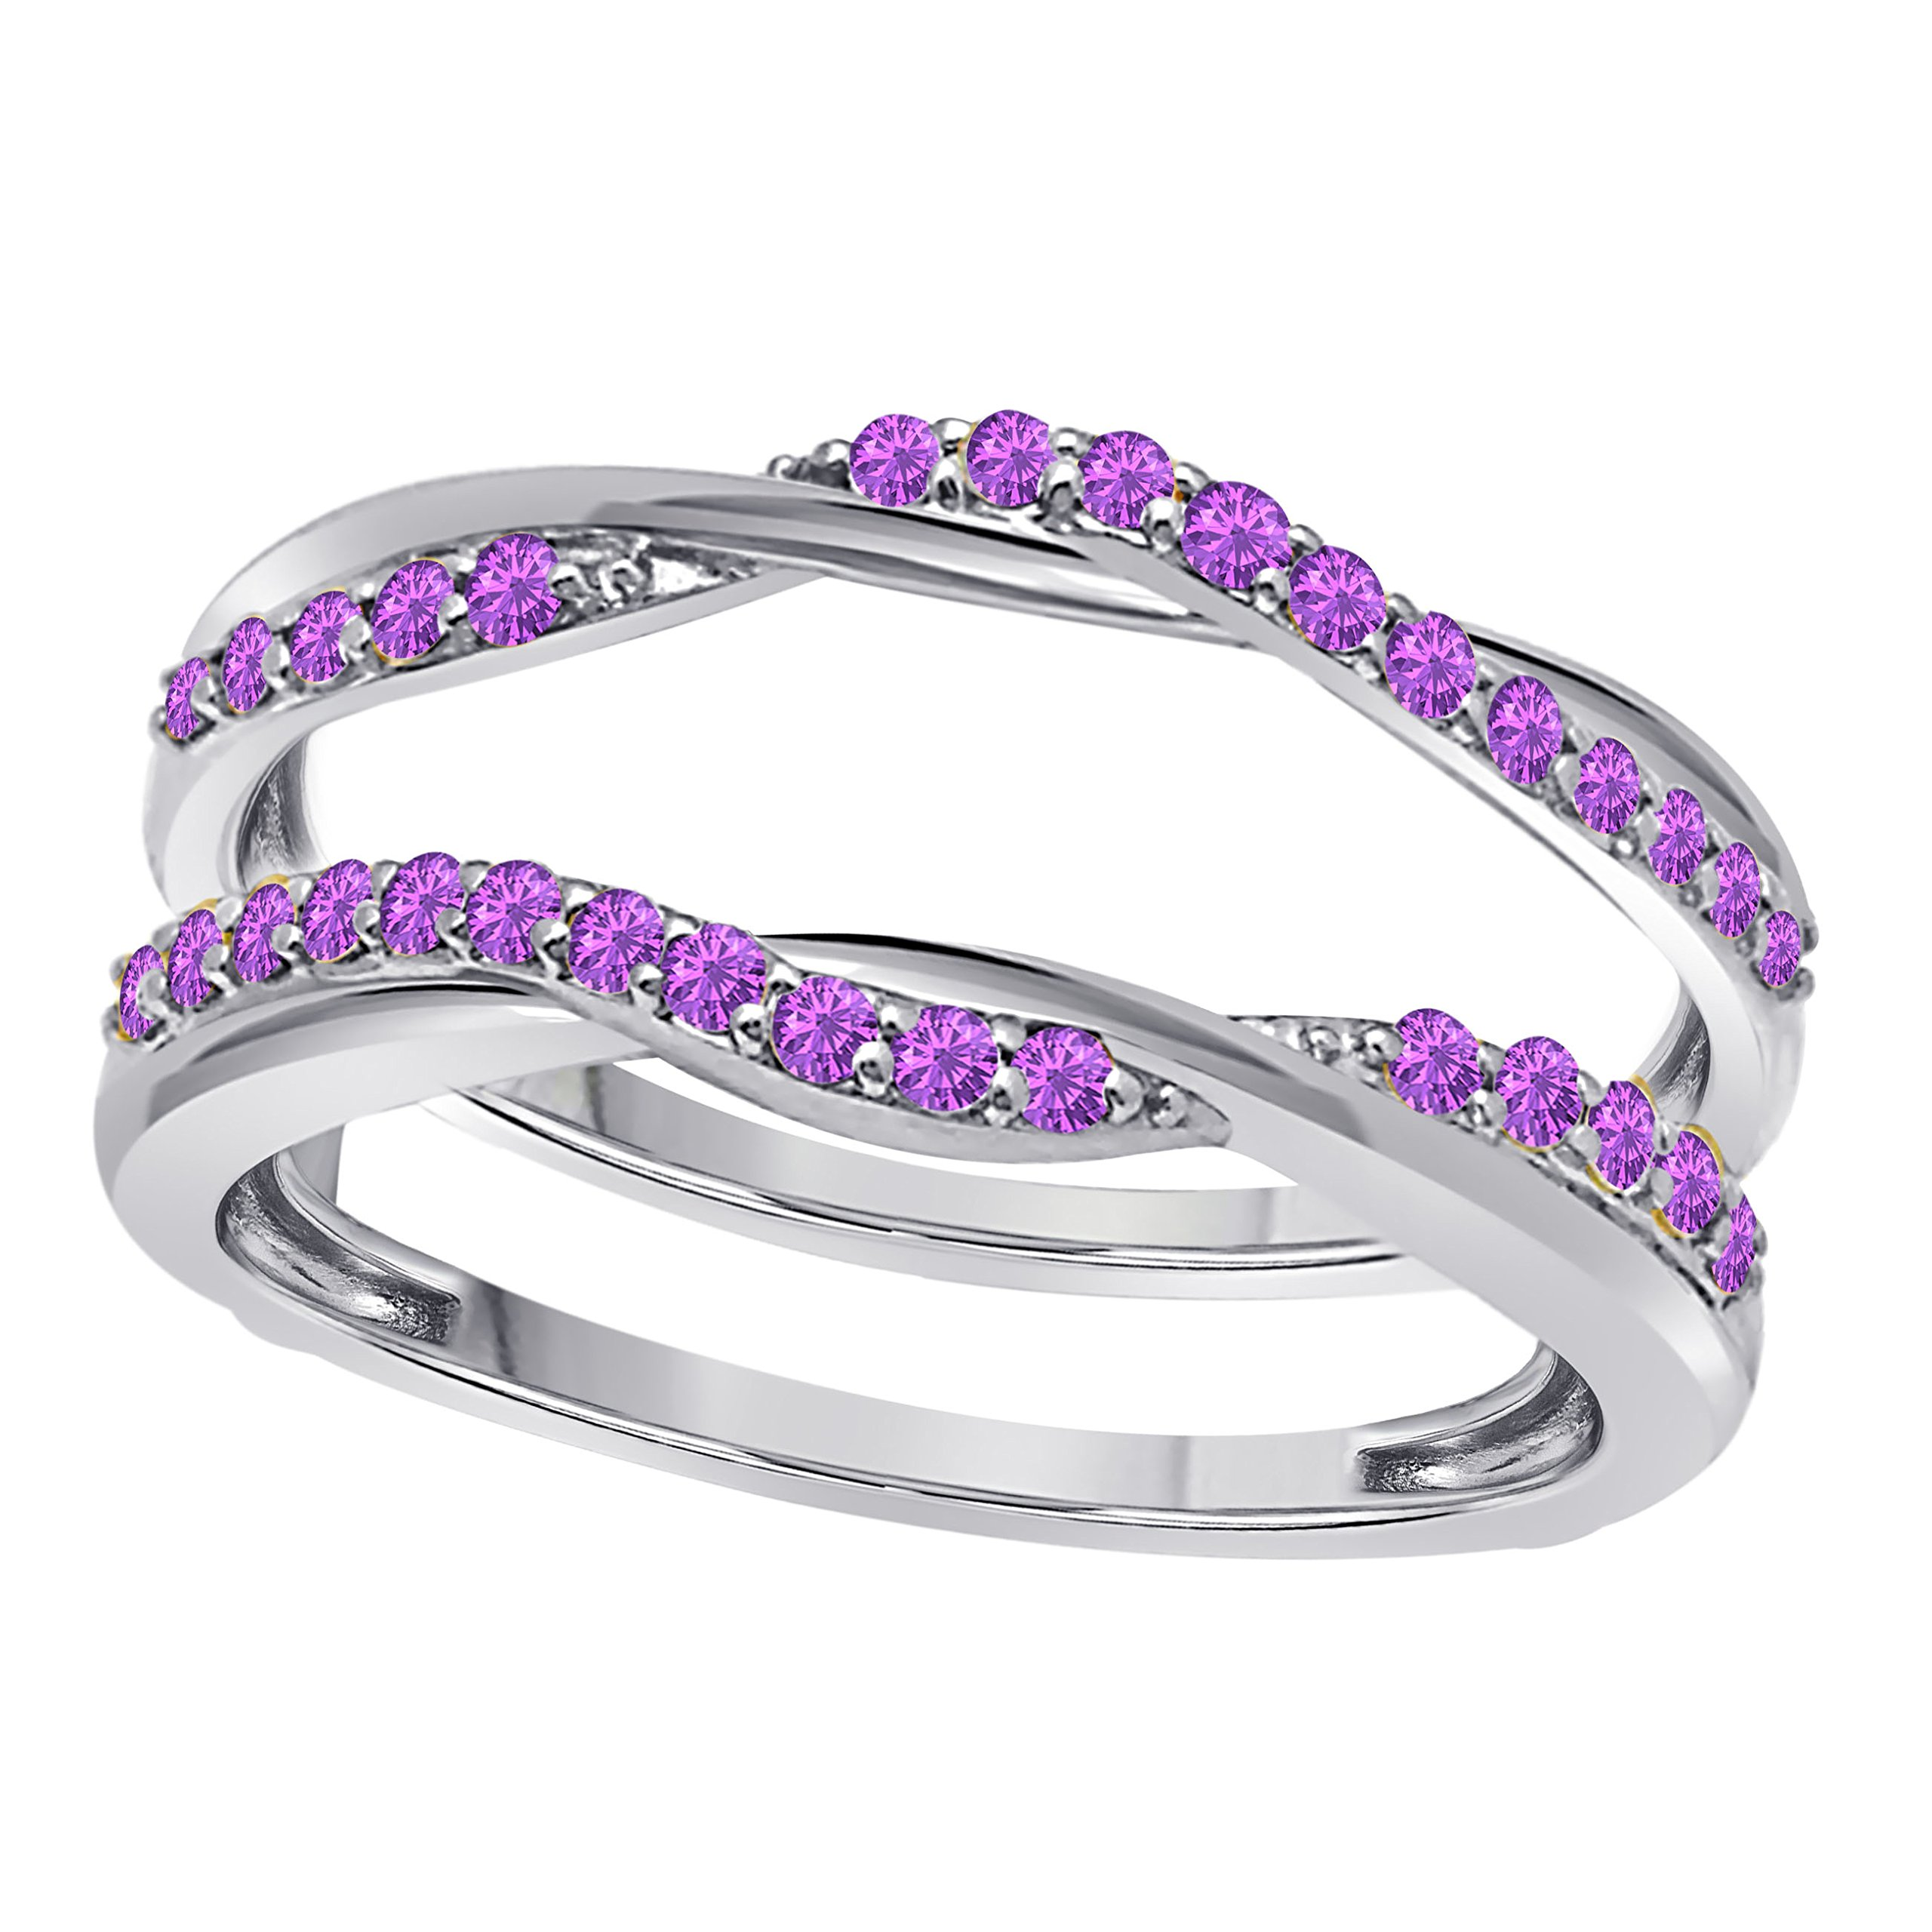 DreamJewels Sterling Silver Plated Delicate Bypass Infinity Style Vintage Wedding Ring Guard Enhancer with CZ Purple Amethyst (0.50 ct. tw.)